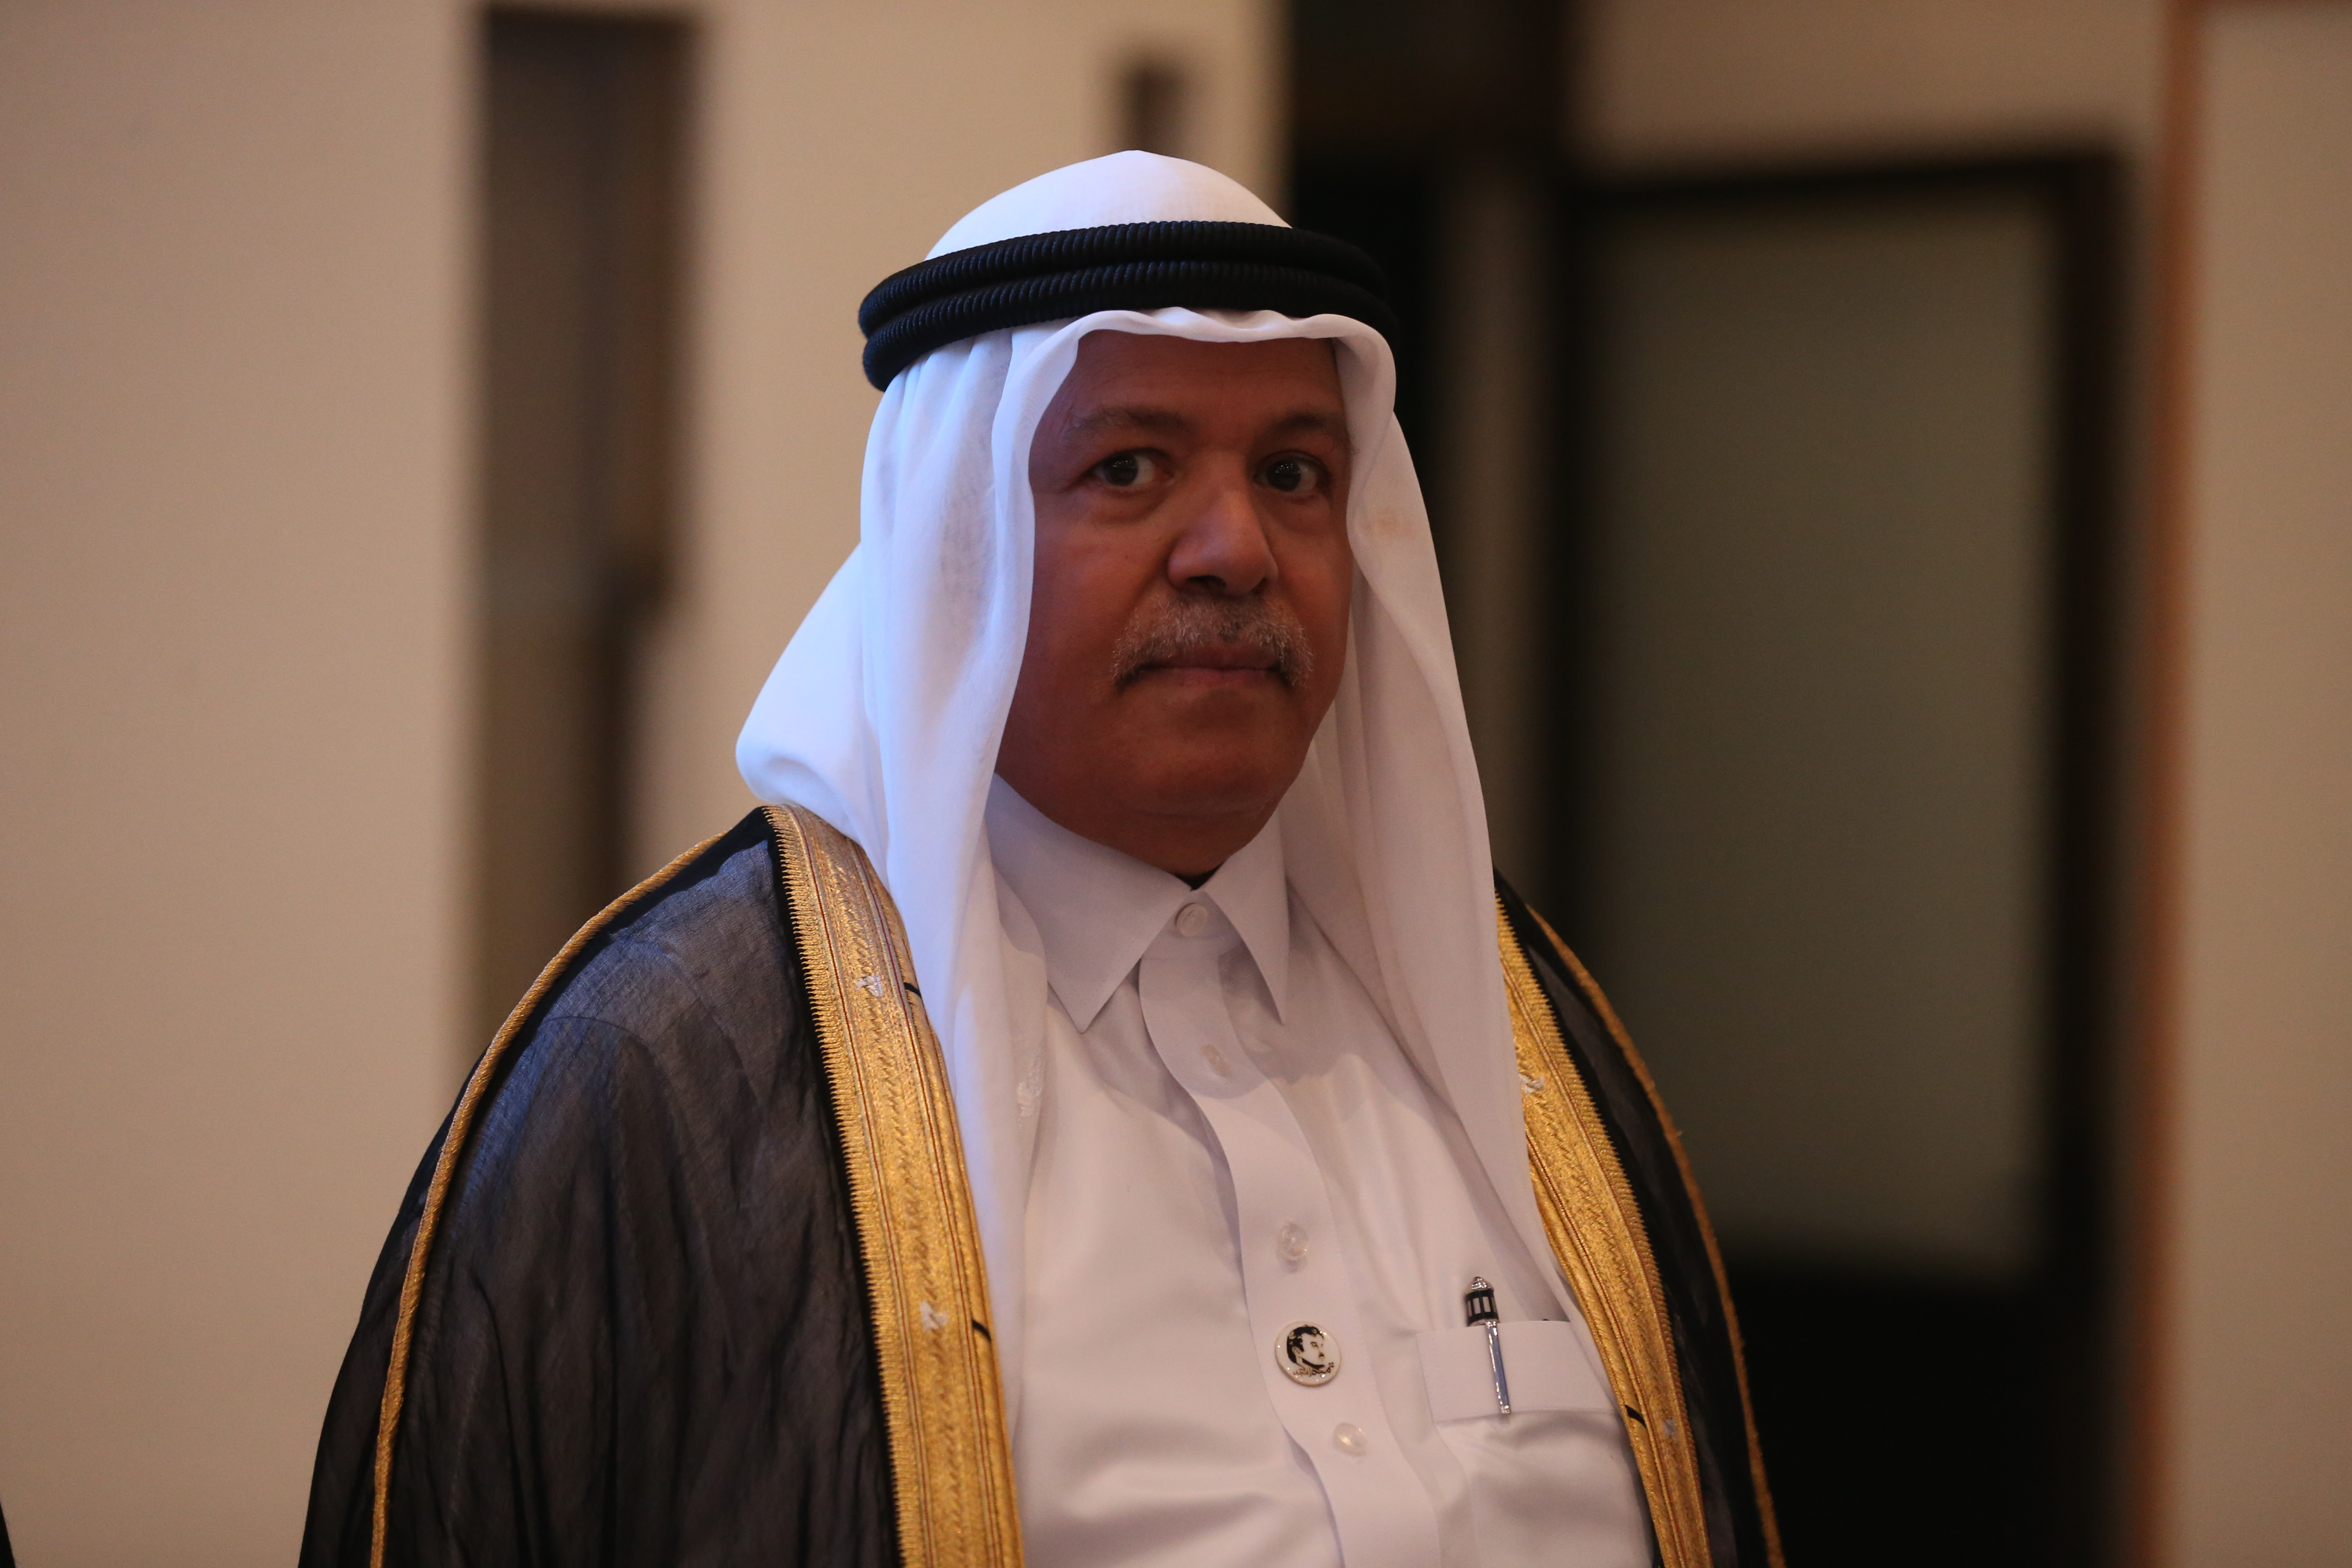 The ambassador said the year of 2020 will be a landmark to both countries, as Qatar will become a regular supplier of natural gas to Brazil